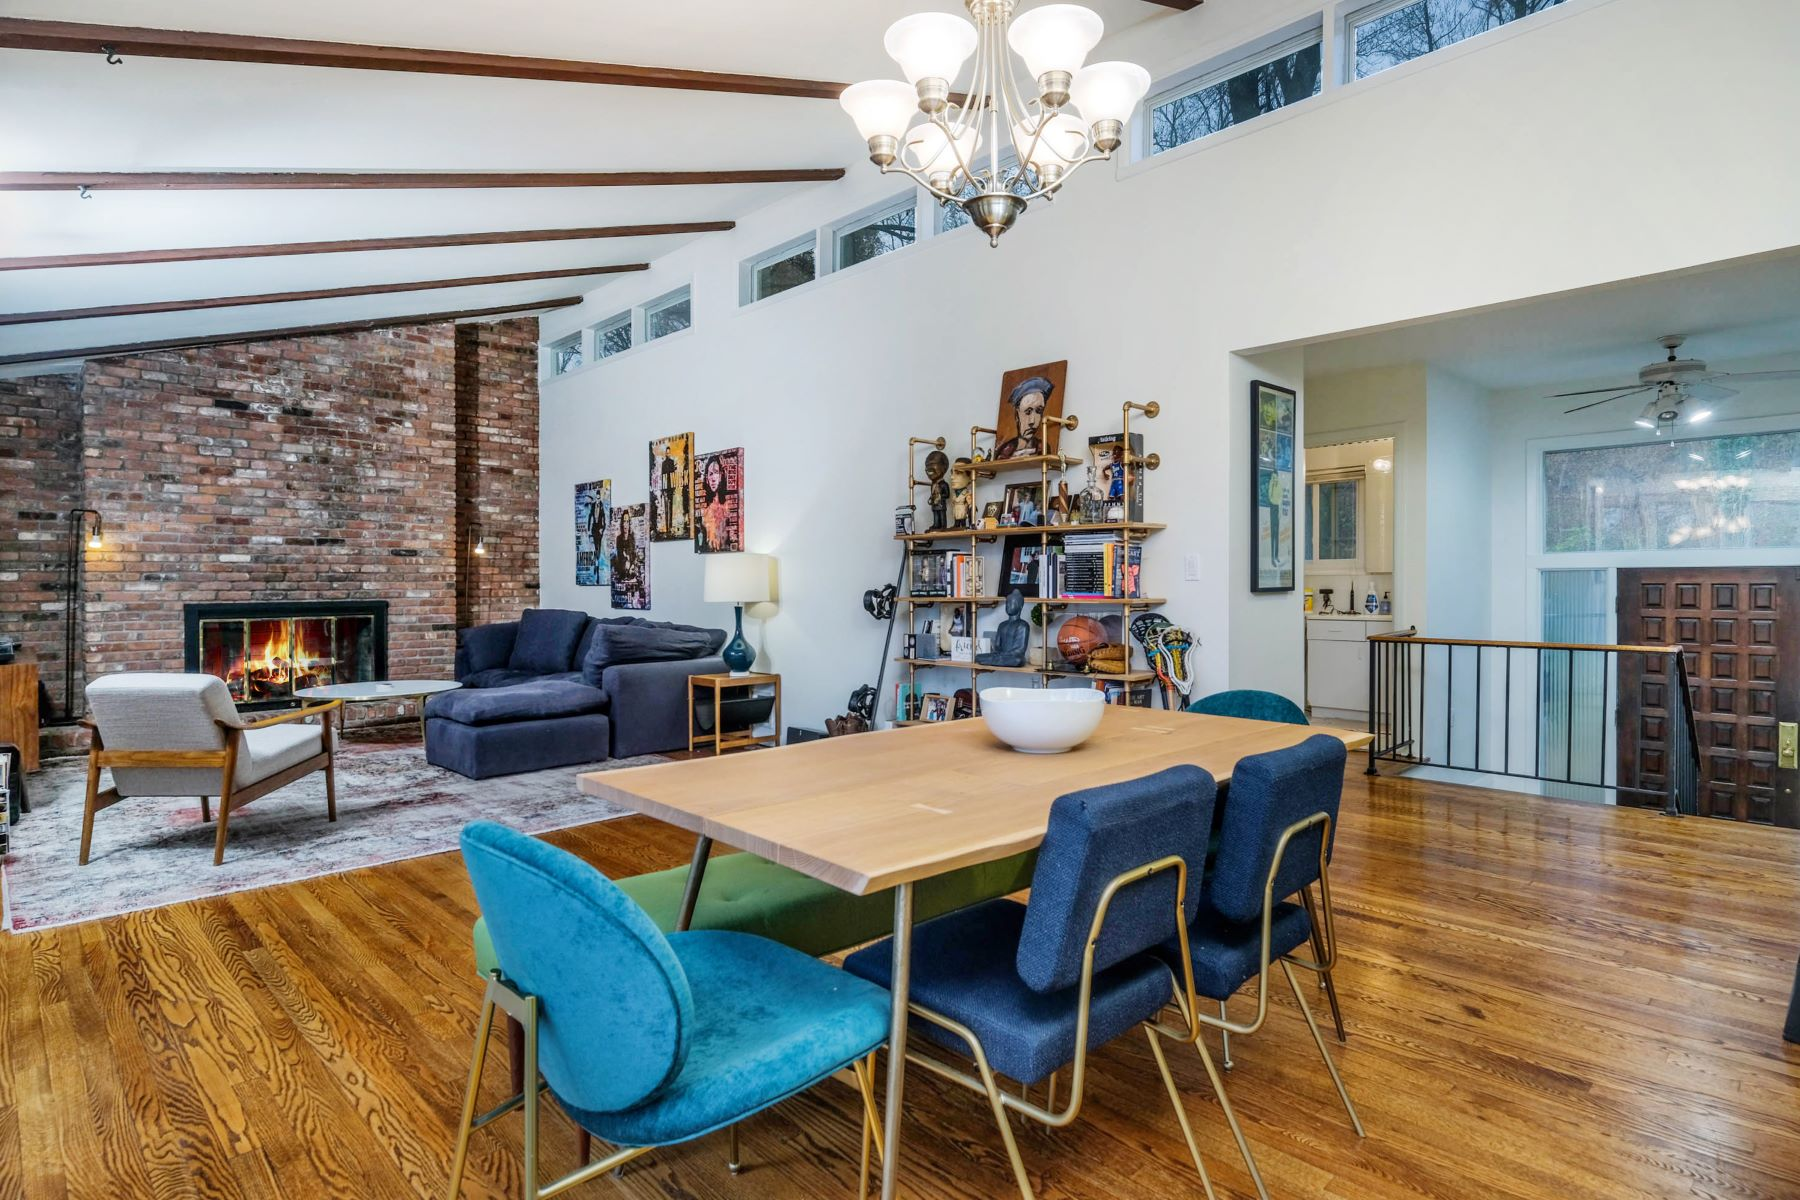 Single Family Homes for Sale at Contemporary Mid-Century Modern Feeling Home 110 N Healy Avenue Hartsdale, New York 10530 United States